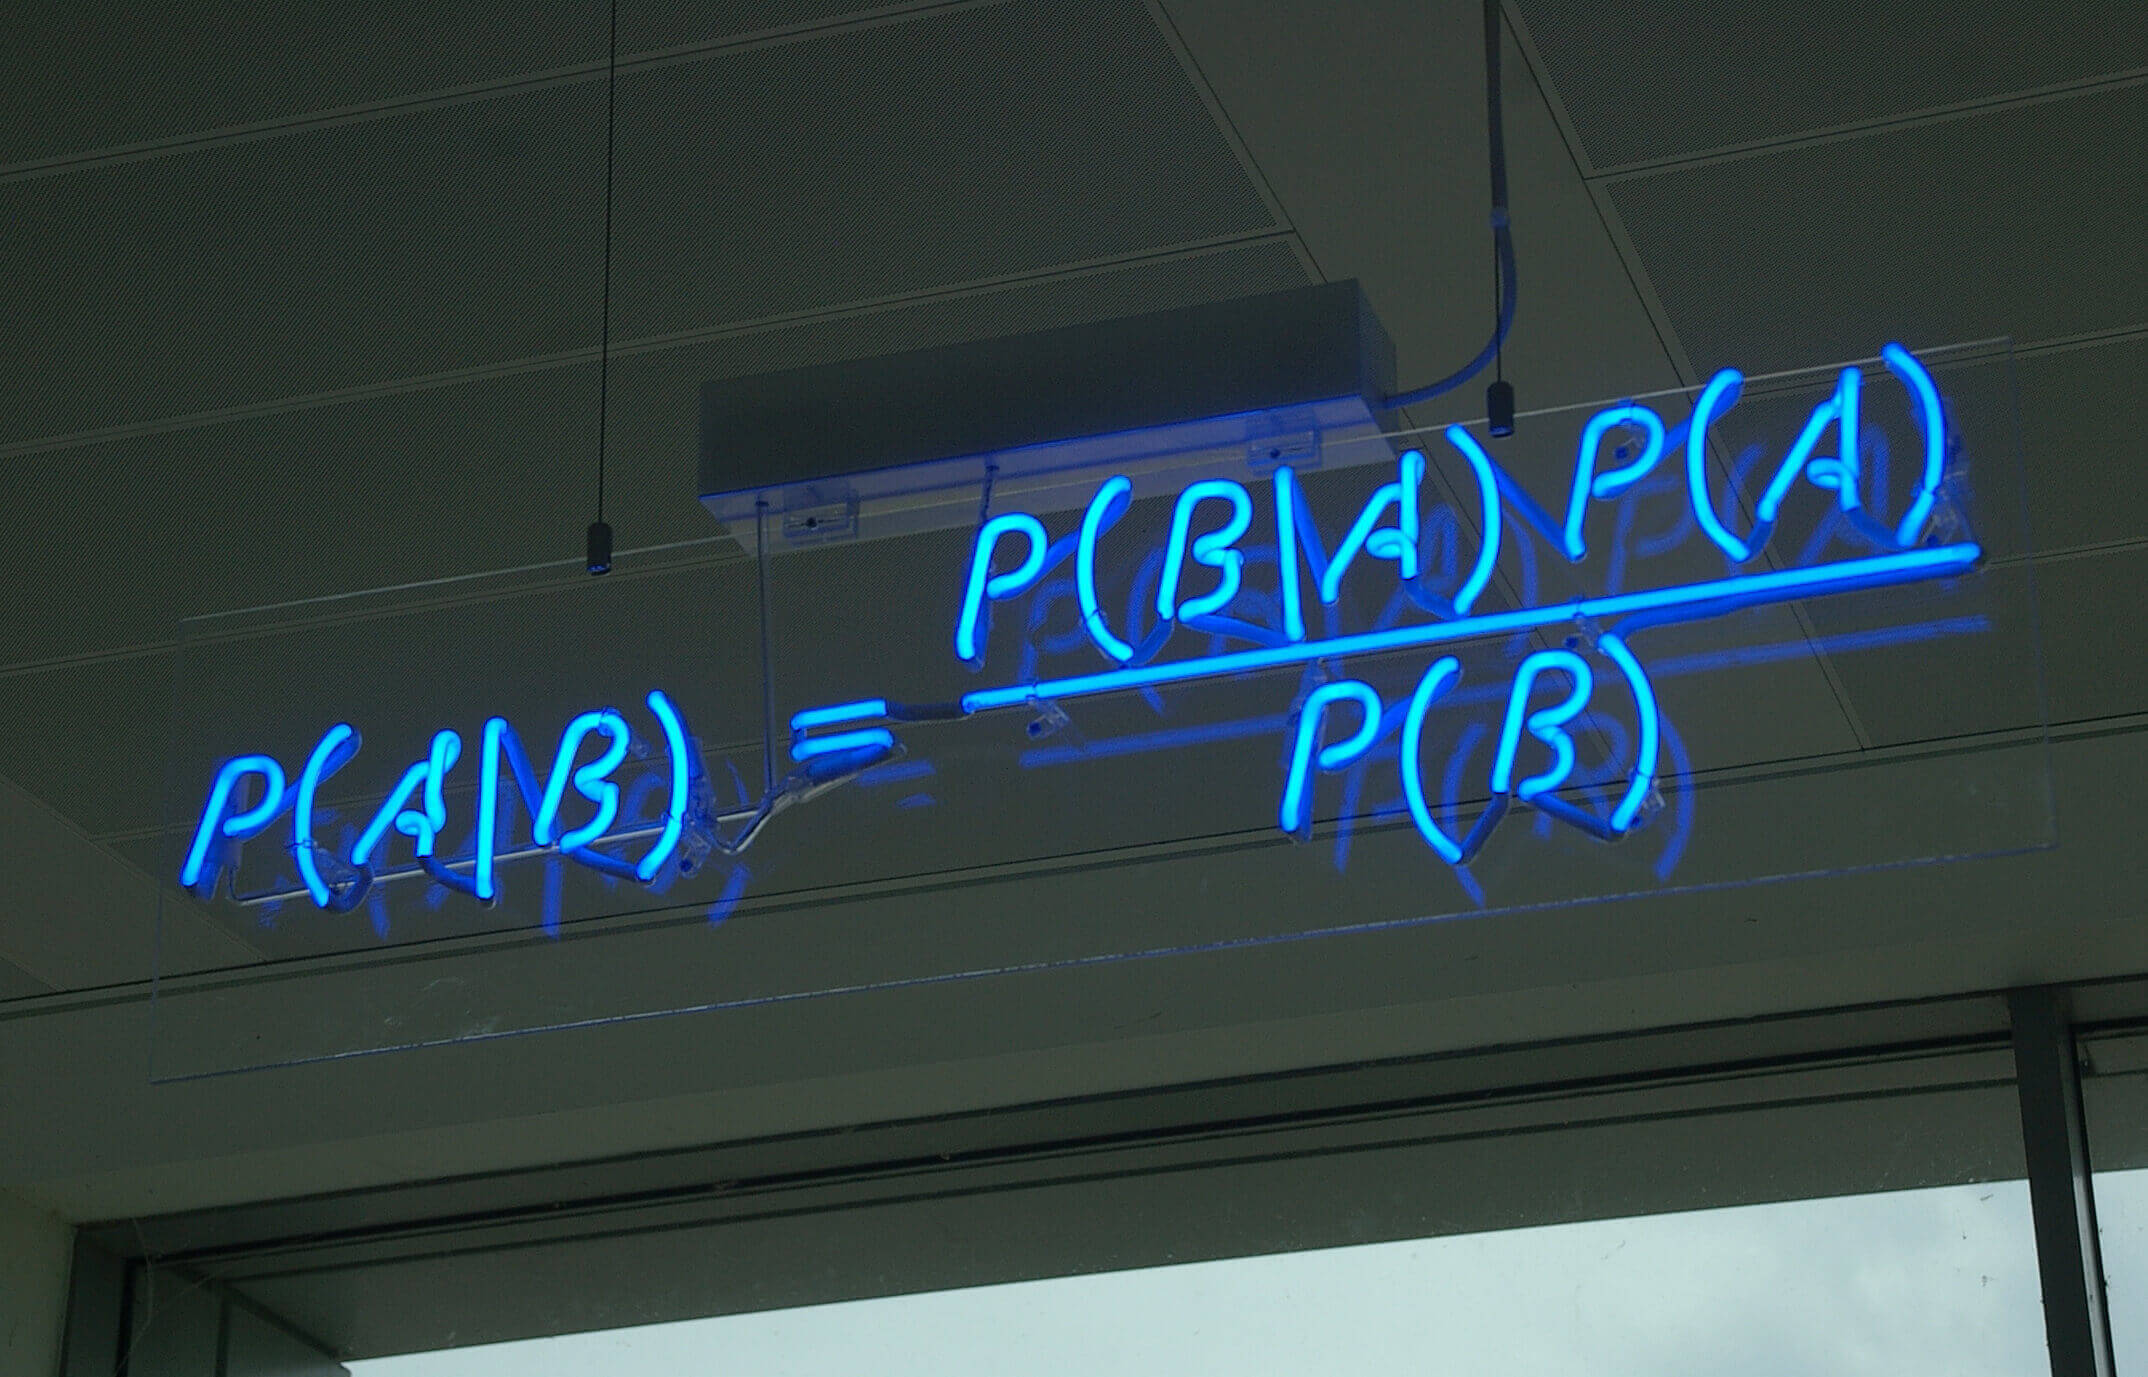 Bayes' Theorem and Robot Arms